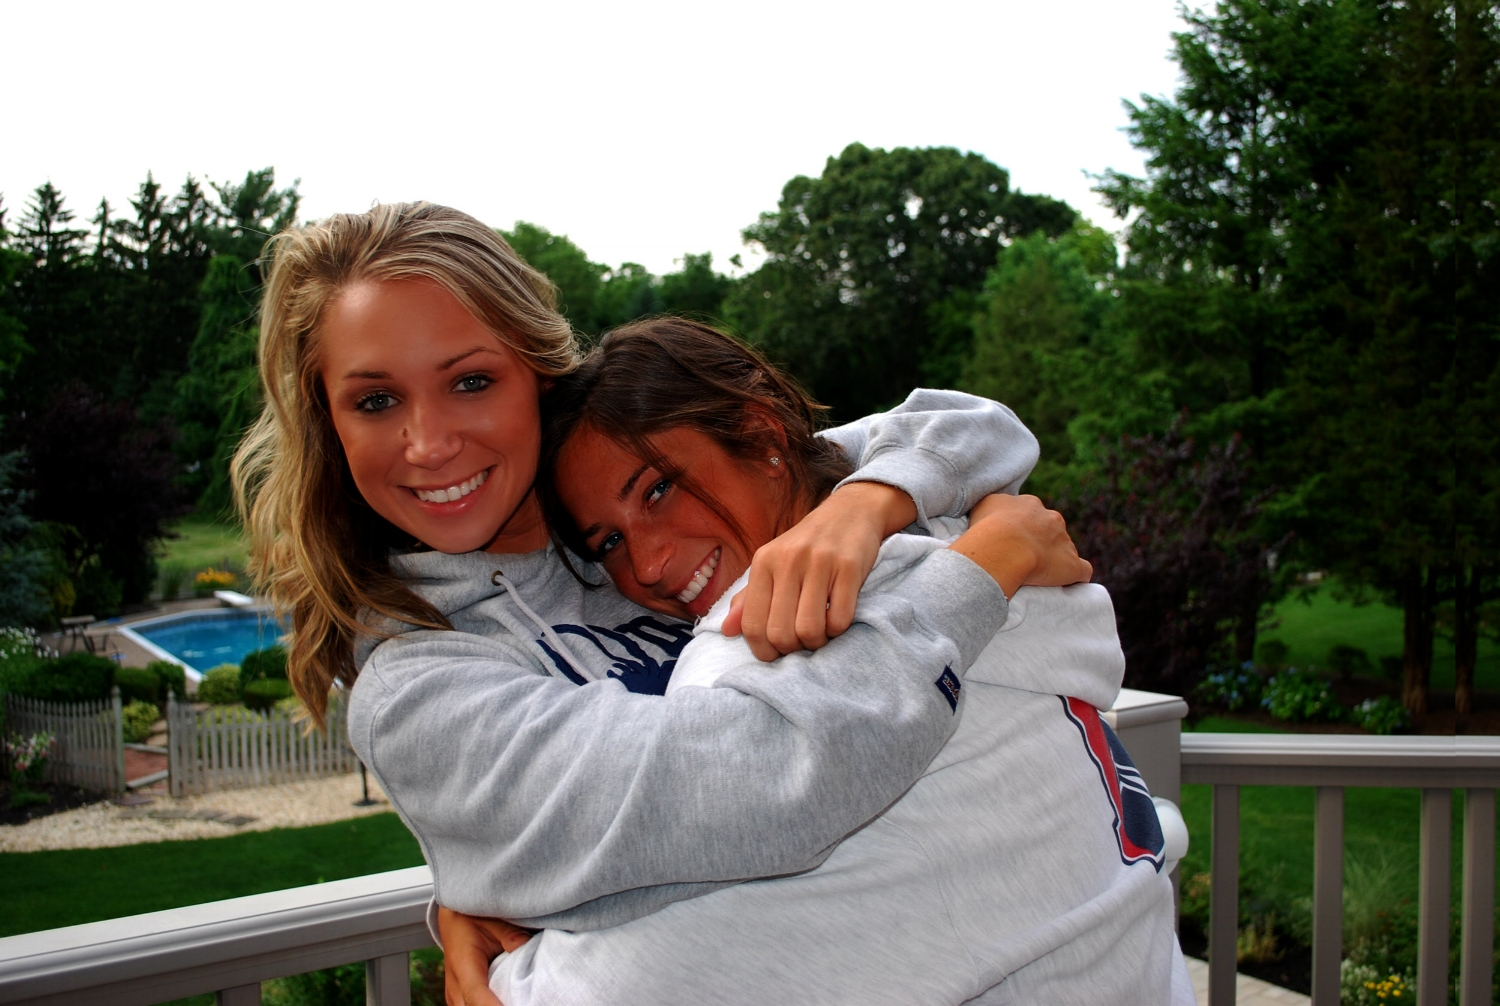 I believe there is no better gift than having my kids home. The reality is those days become increasingly rare as they grow older. I appreciate any time we are able to spend together. This pic was taken on a beautiful summer night at our home in NJ. Who would ever think these sisters would end up together again...?